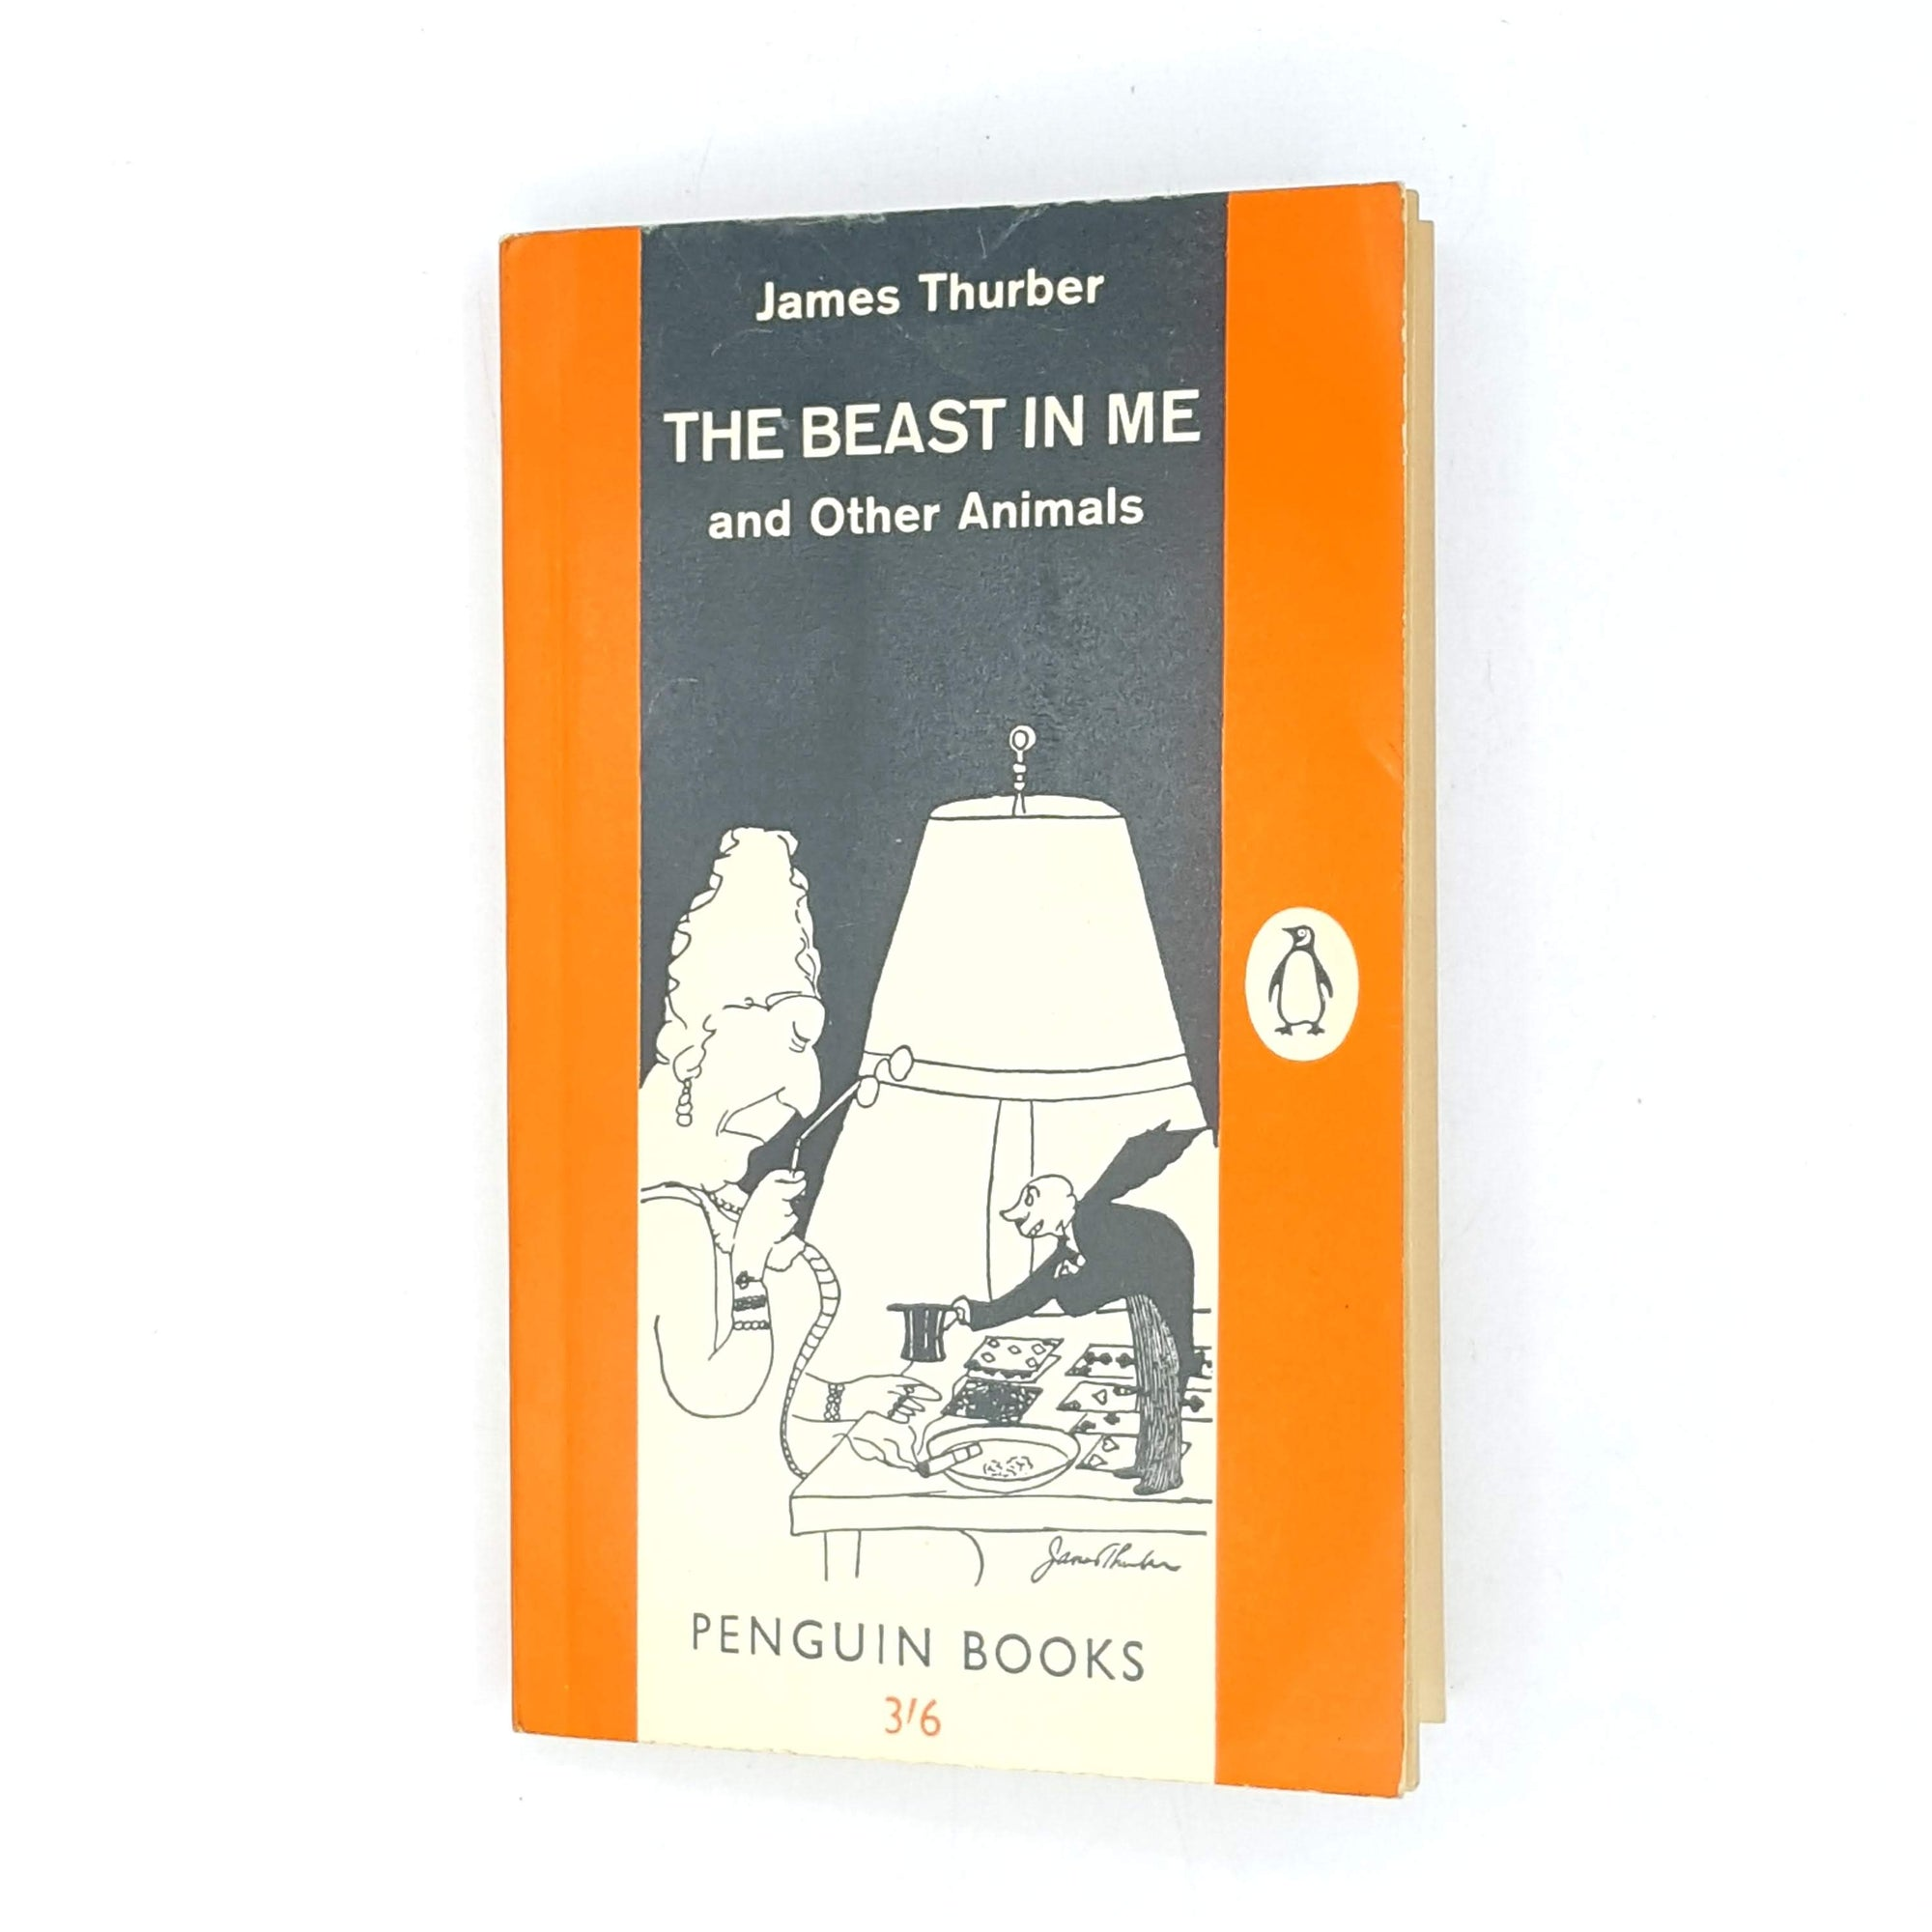 The Beast in me and Other Animals by James Thurber 1961